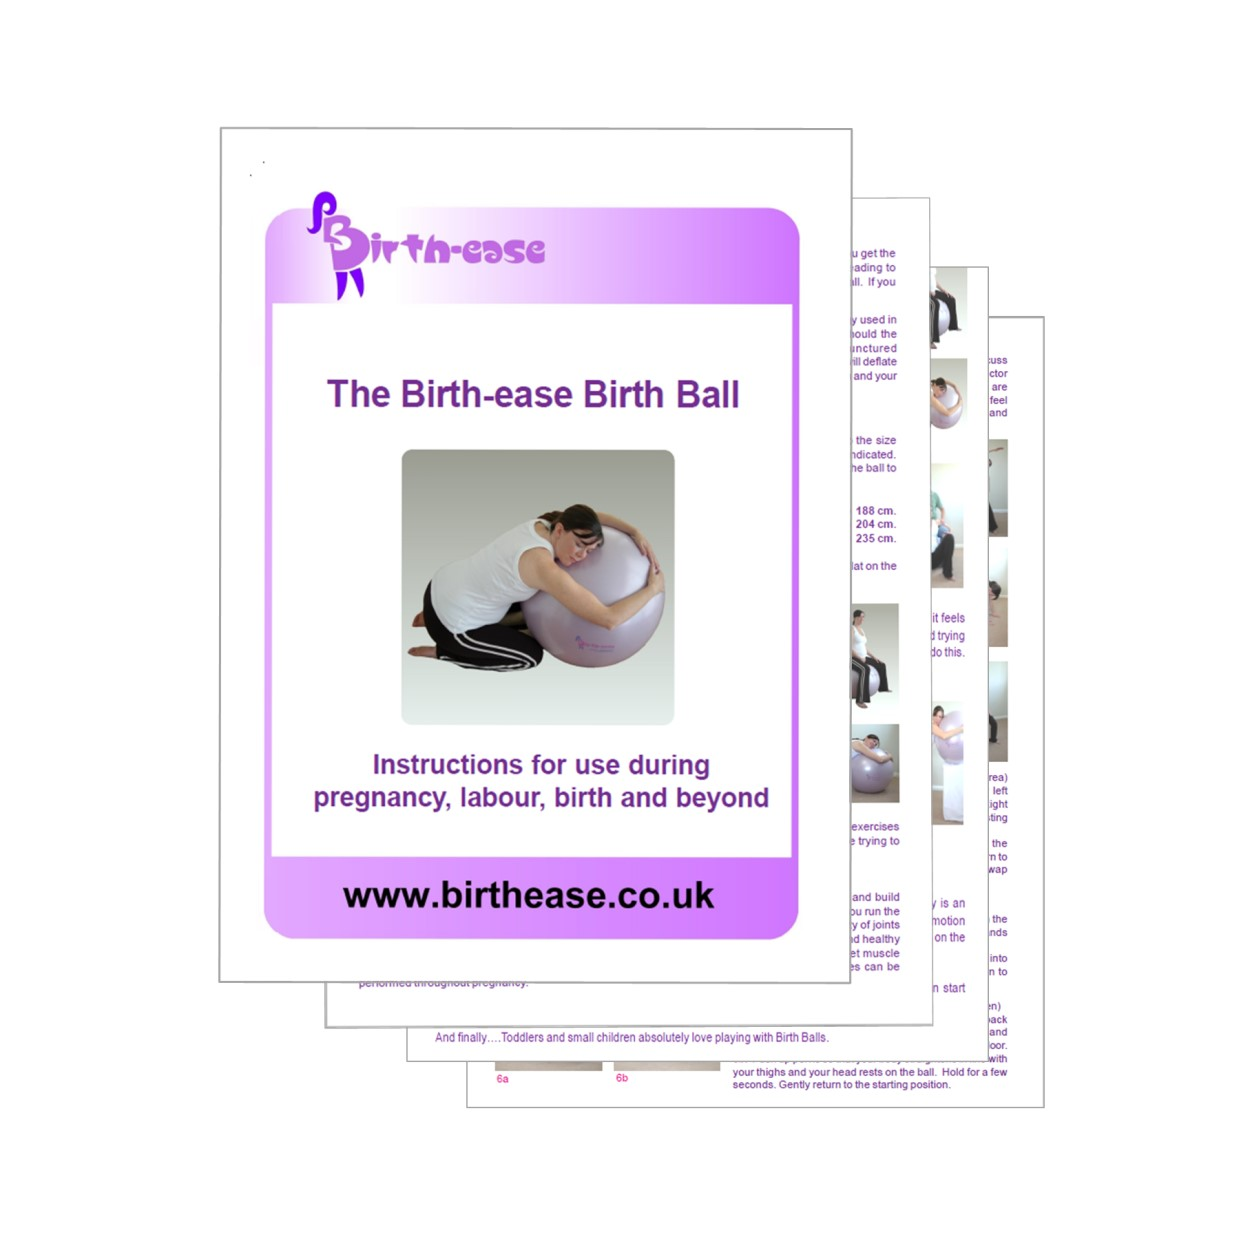 Leaflet and instructions for using the birthease birthing ball